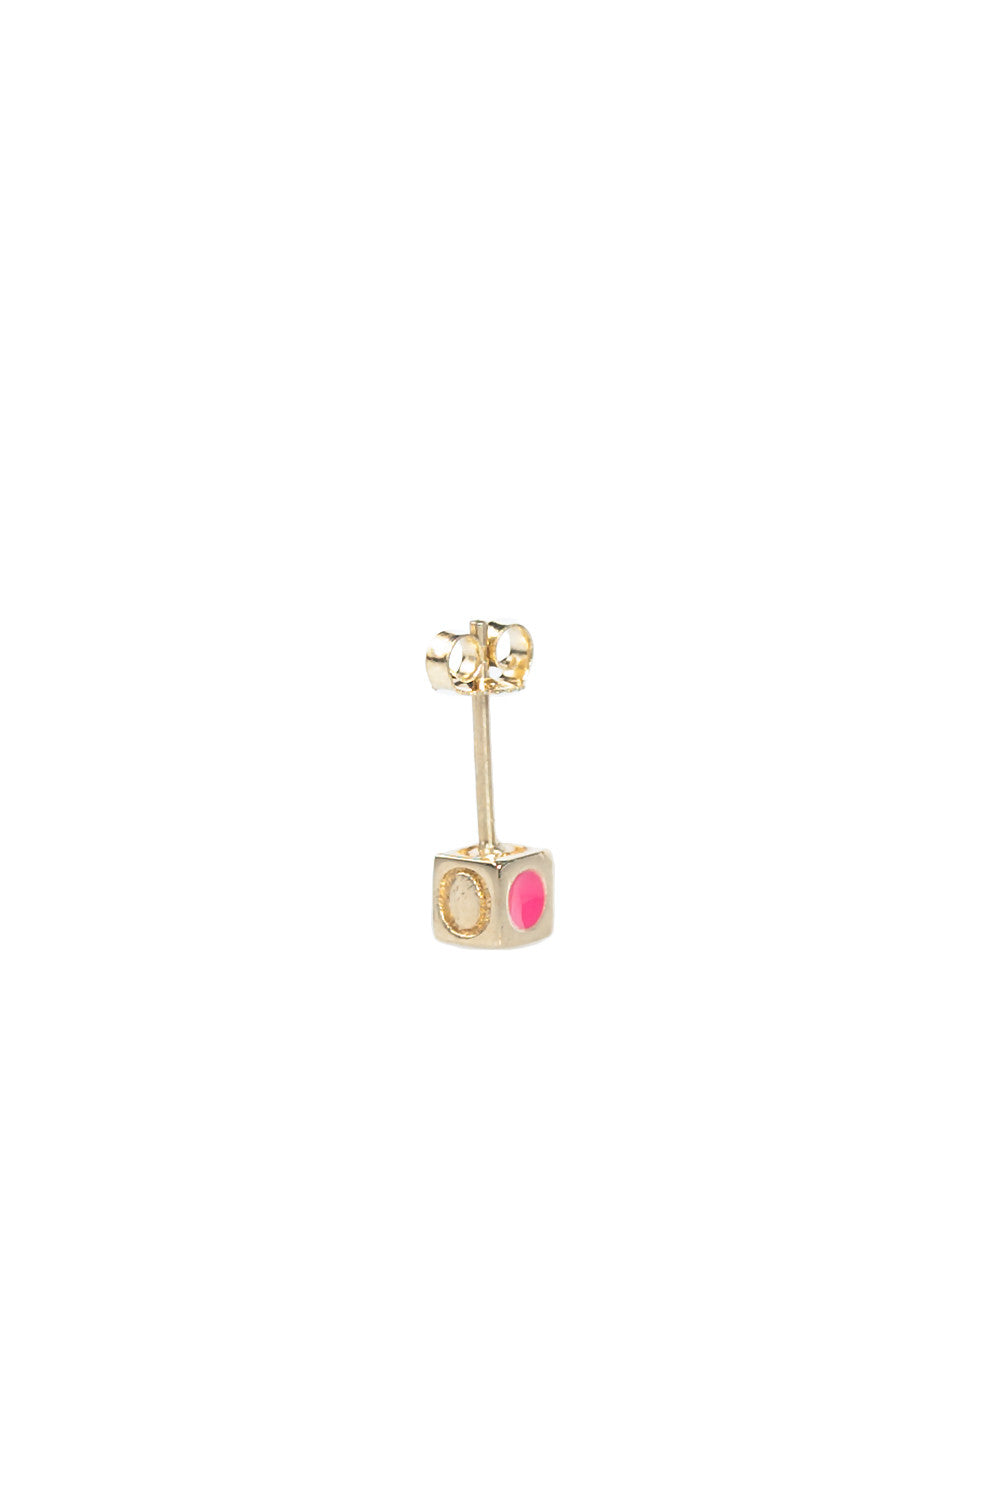 'O' CAMP Stud Earring in Bright Pink